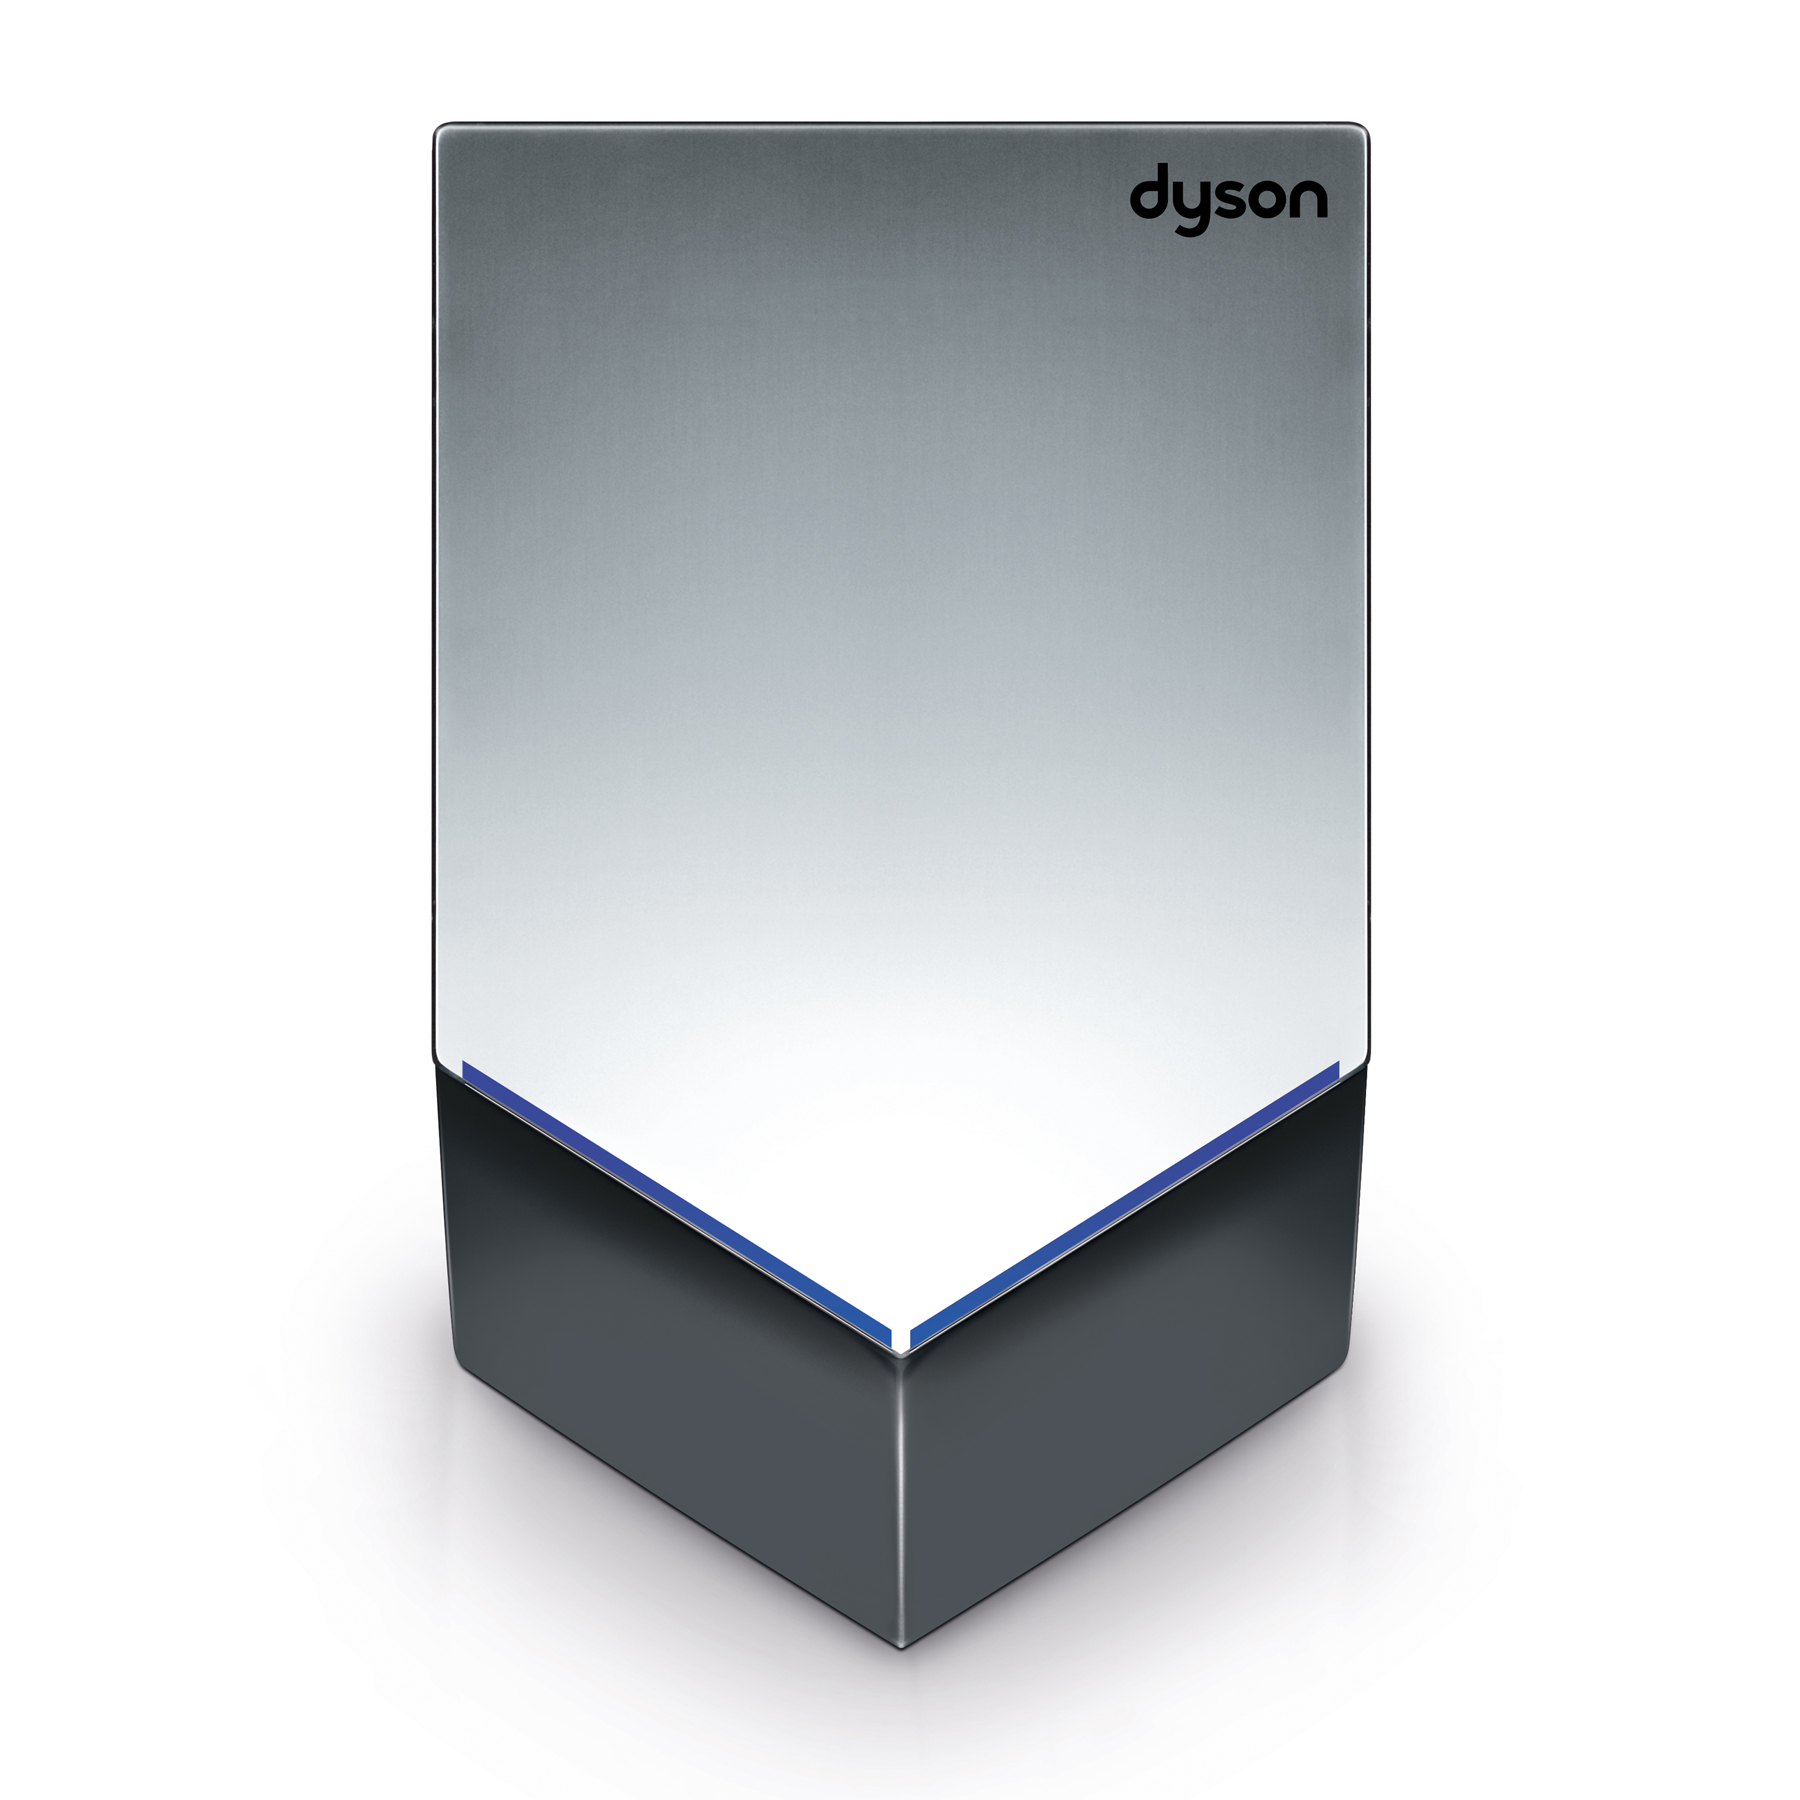 dyson airblade v hand dryer savemoneycutcarbon. Black Bedroom Furniture Sets. Home Design Ideas